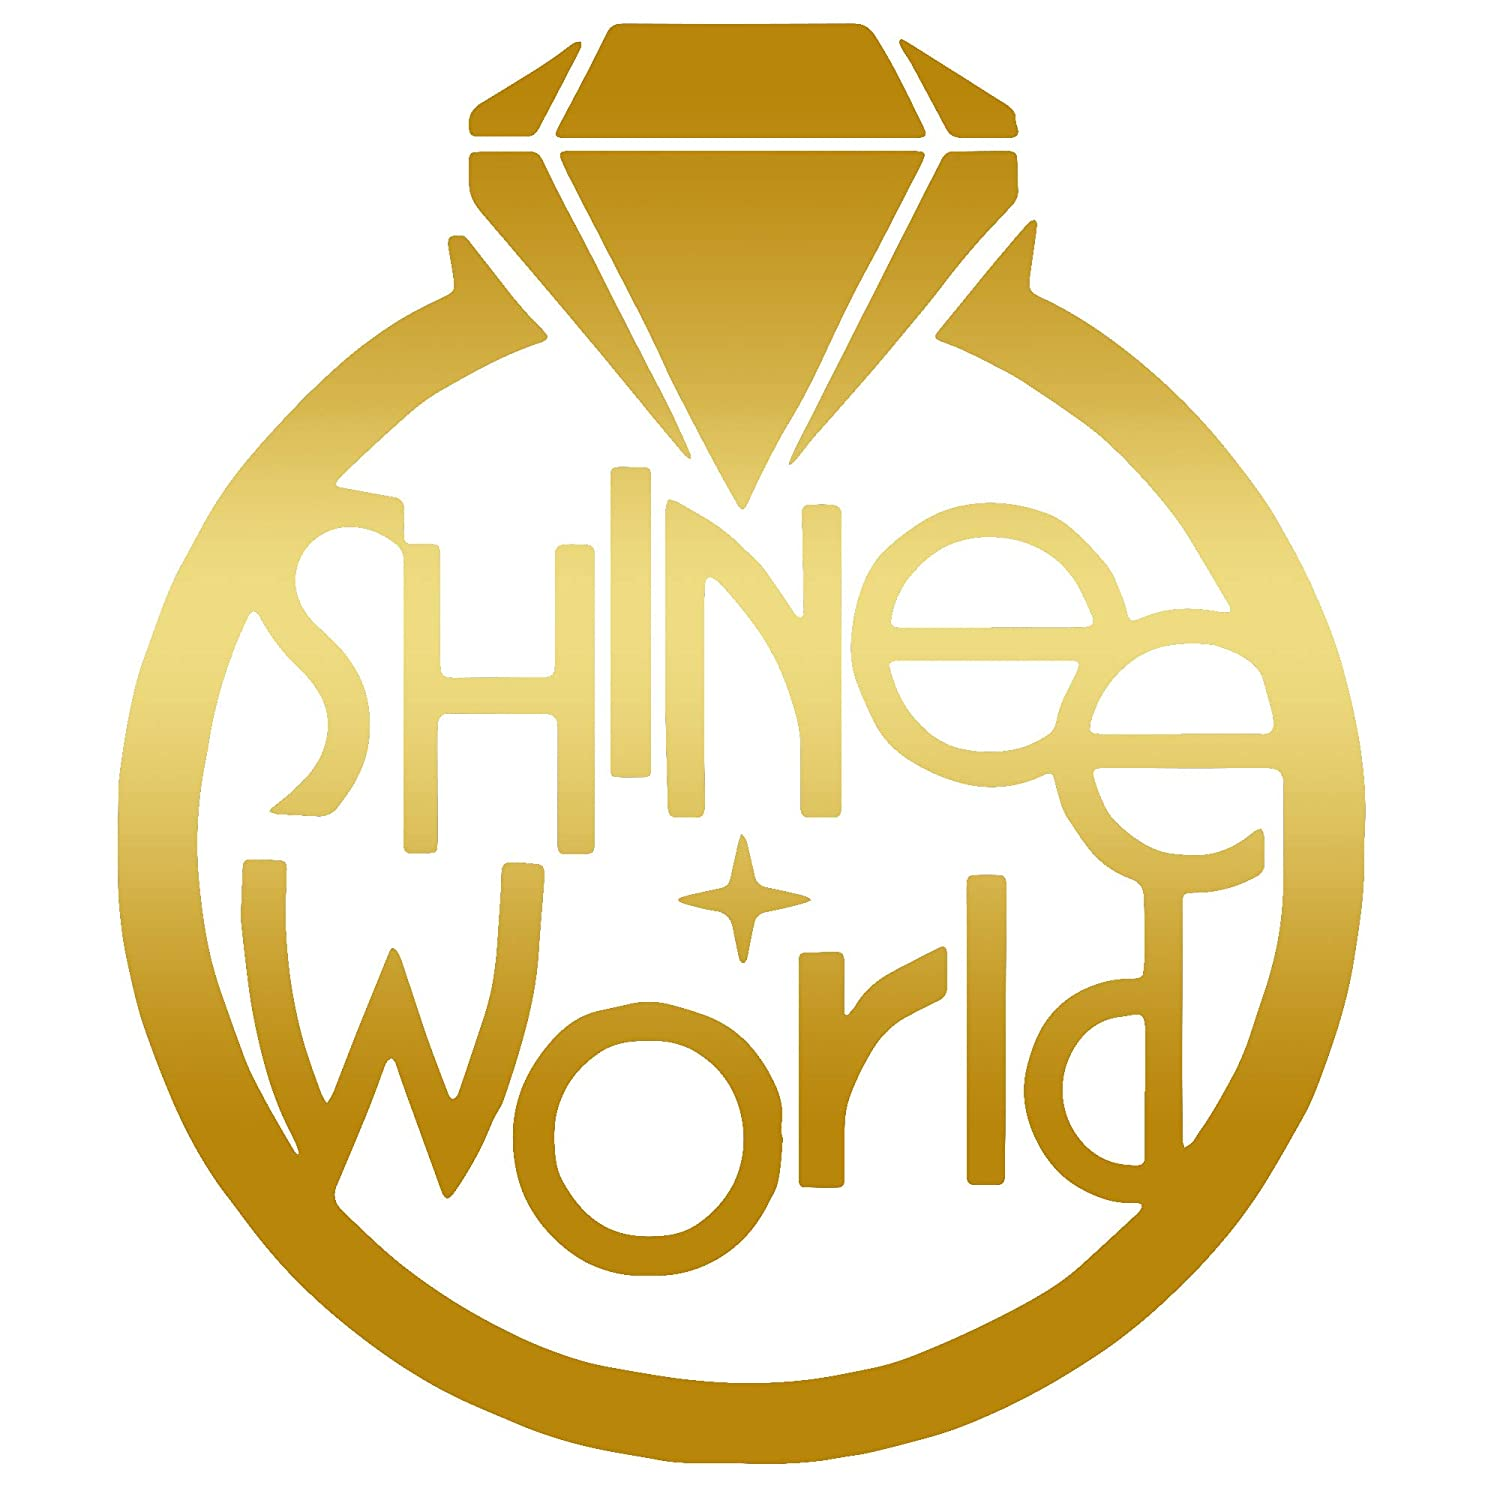 Angdest shinee world kpop metallic gold set of 2 premium waterproof vinyl decal stickers for laptop phone accessory helmet car window bumper mug tuber